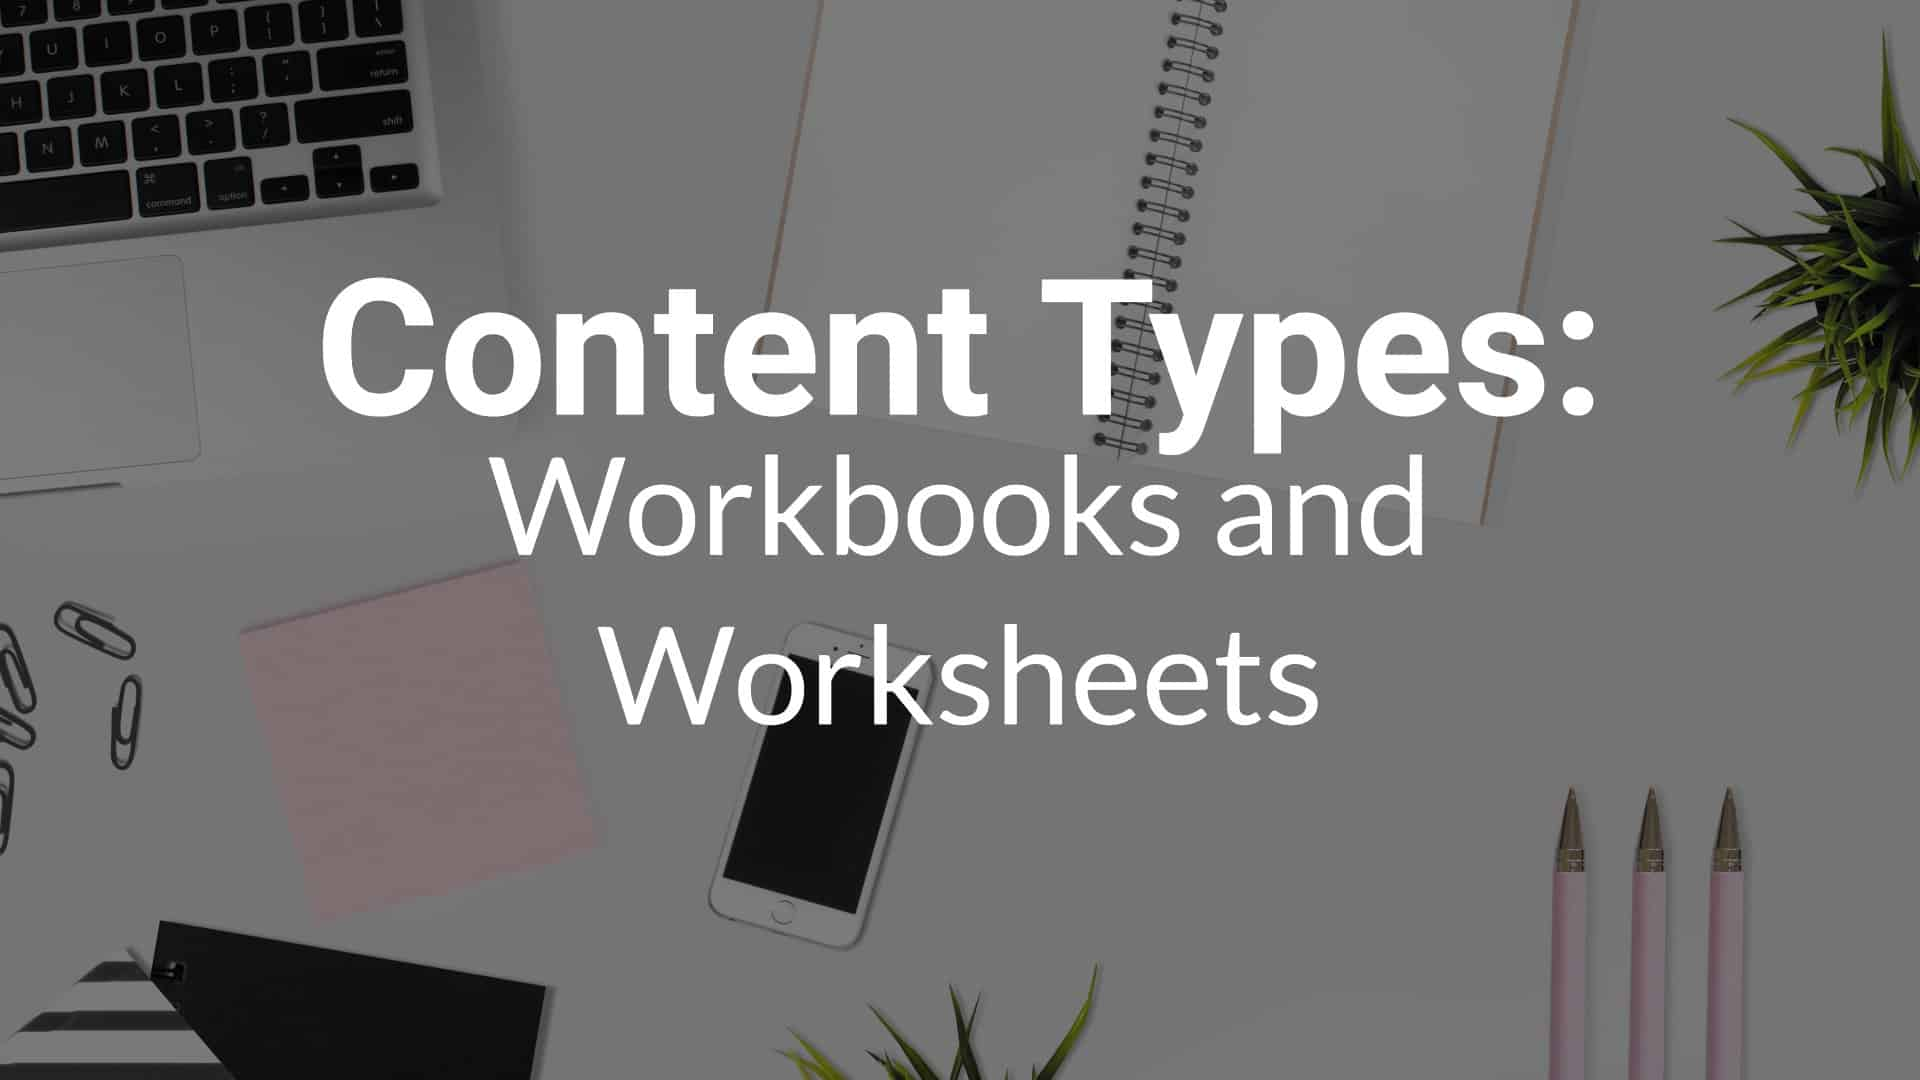 Content Types Workbooks And Worksheets